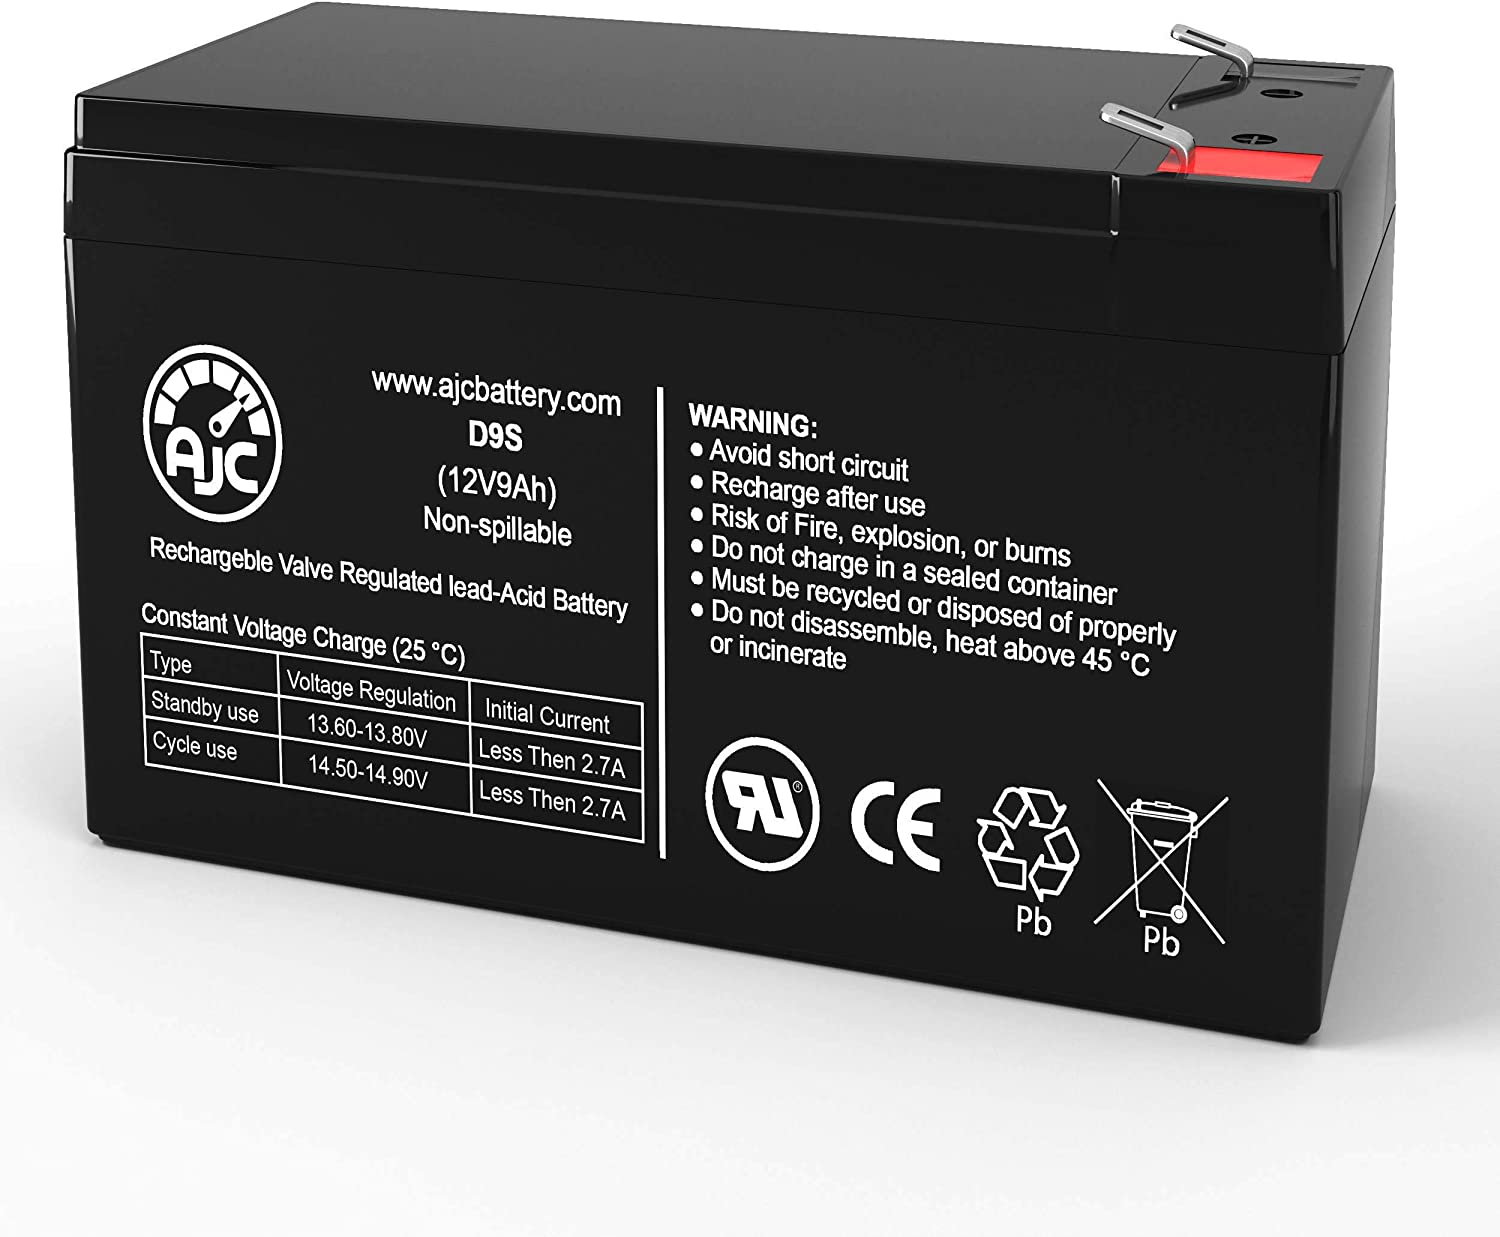 Razor MX350 Dirt/ Rocket 12V 9Ah Electric Scooter Battery This is an AJC Brand Replacement